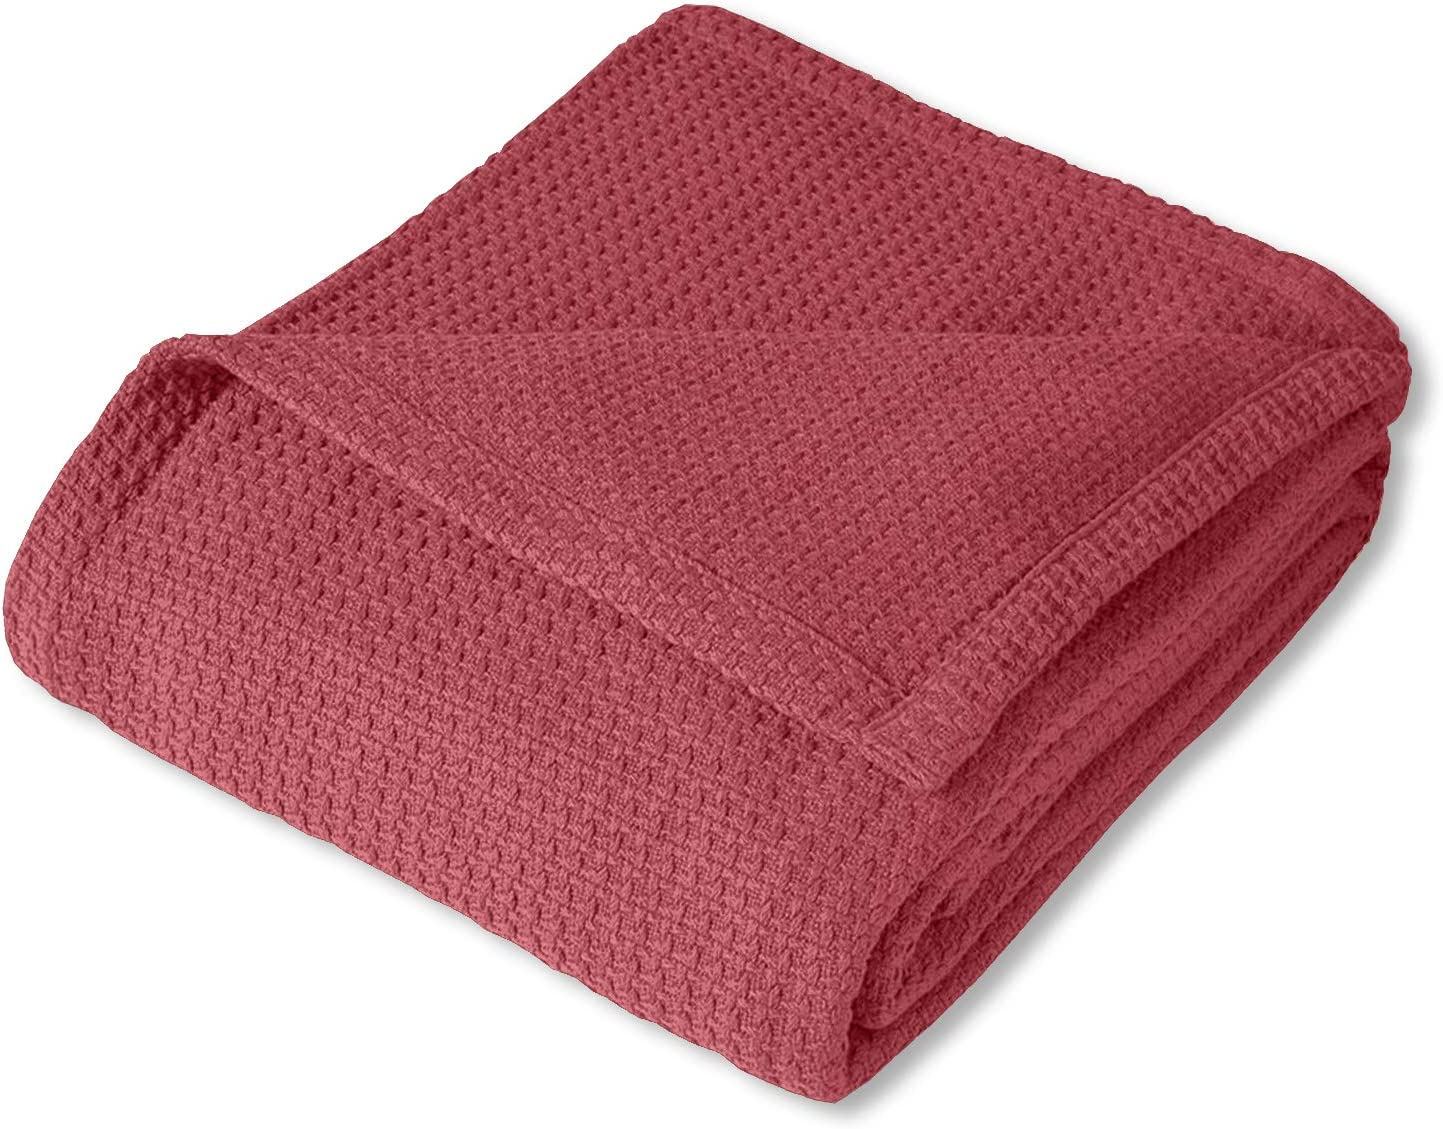 Sweet Home Collection 100% Fine Cotton Blanket Luxurious Basket Weave Stylish Design Soft and Comfortable All Season Warmth, Full/Queen, Burgundy Red